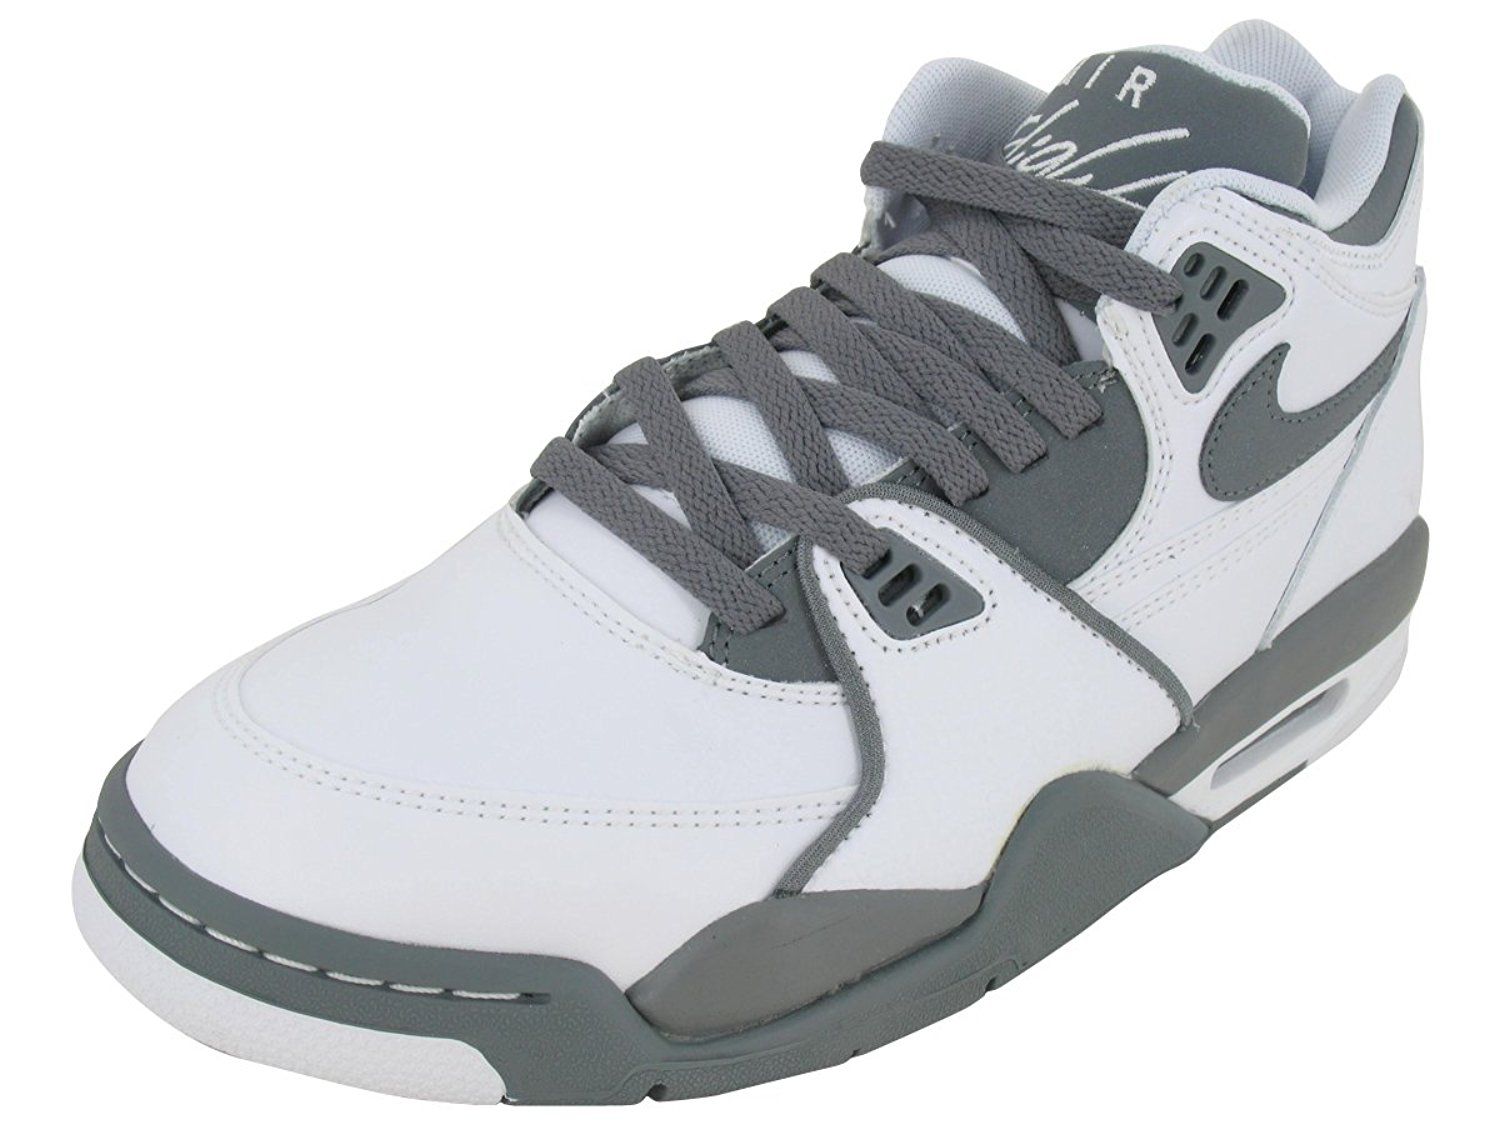 best service 76ef4 bf7ad Get Quotations · Nike Air Flight 89 Mens Basketball Shoes 306252-109